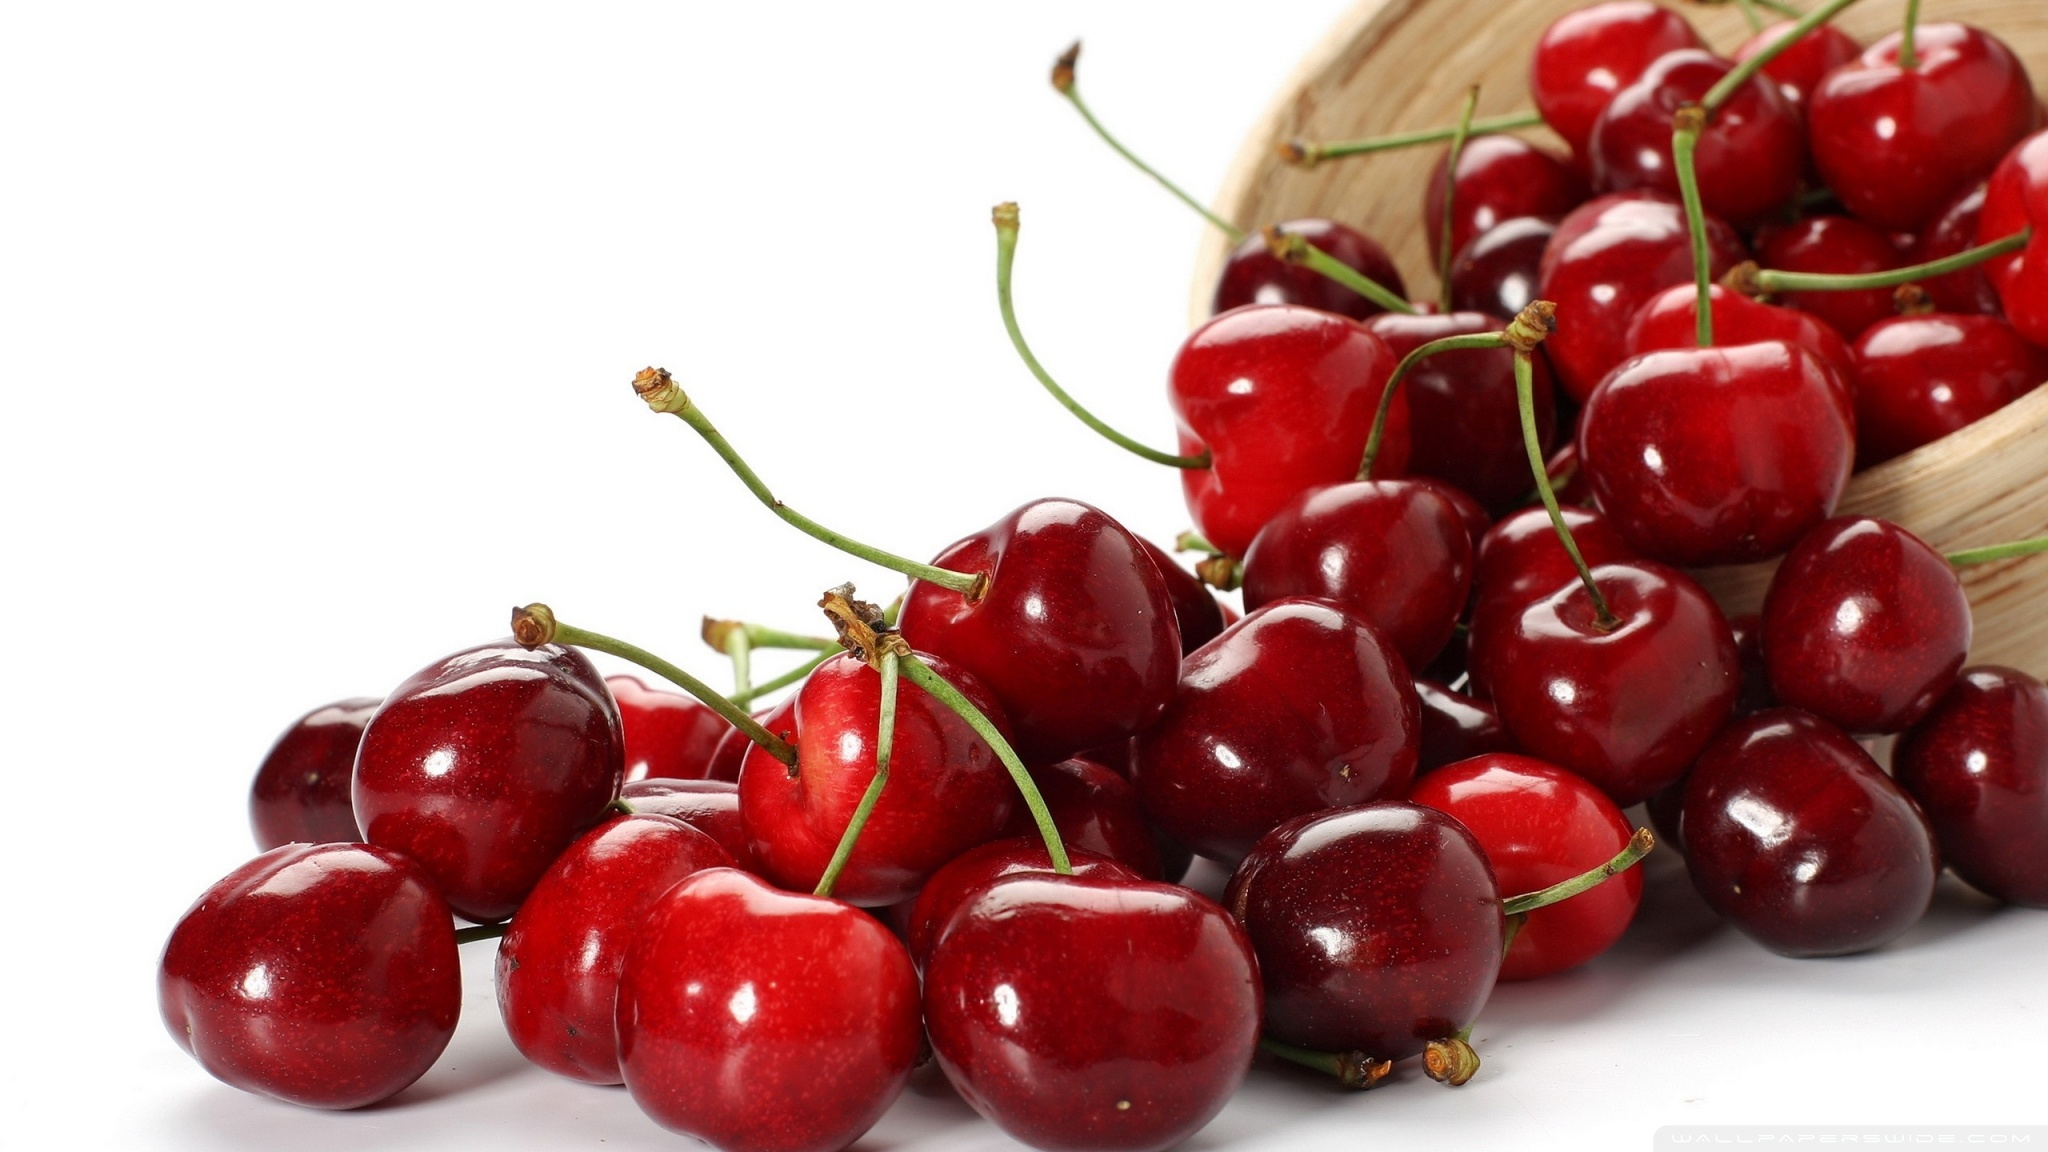 Cherry Images